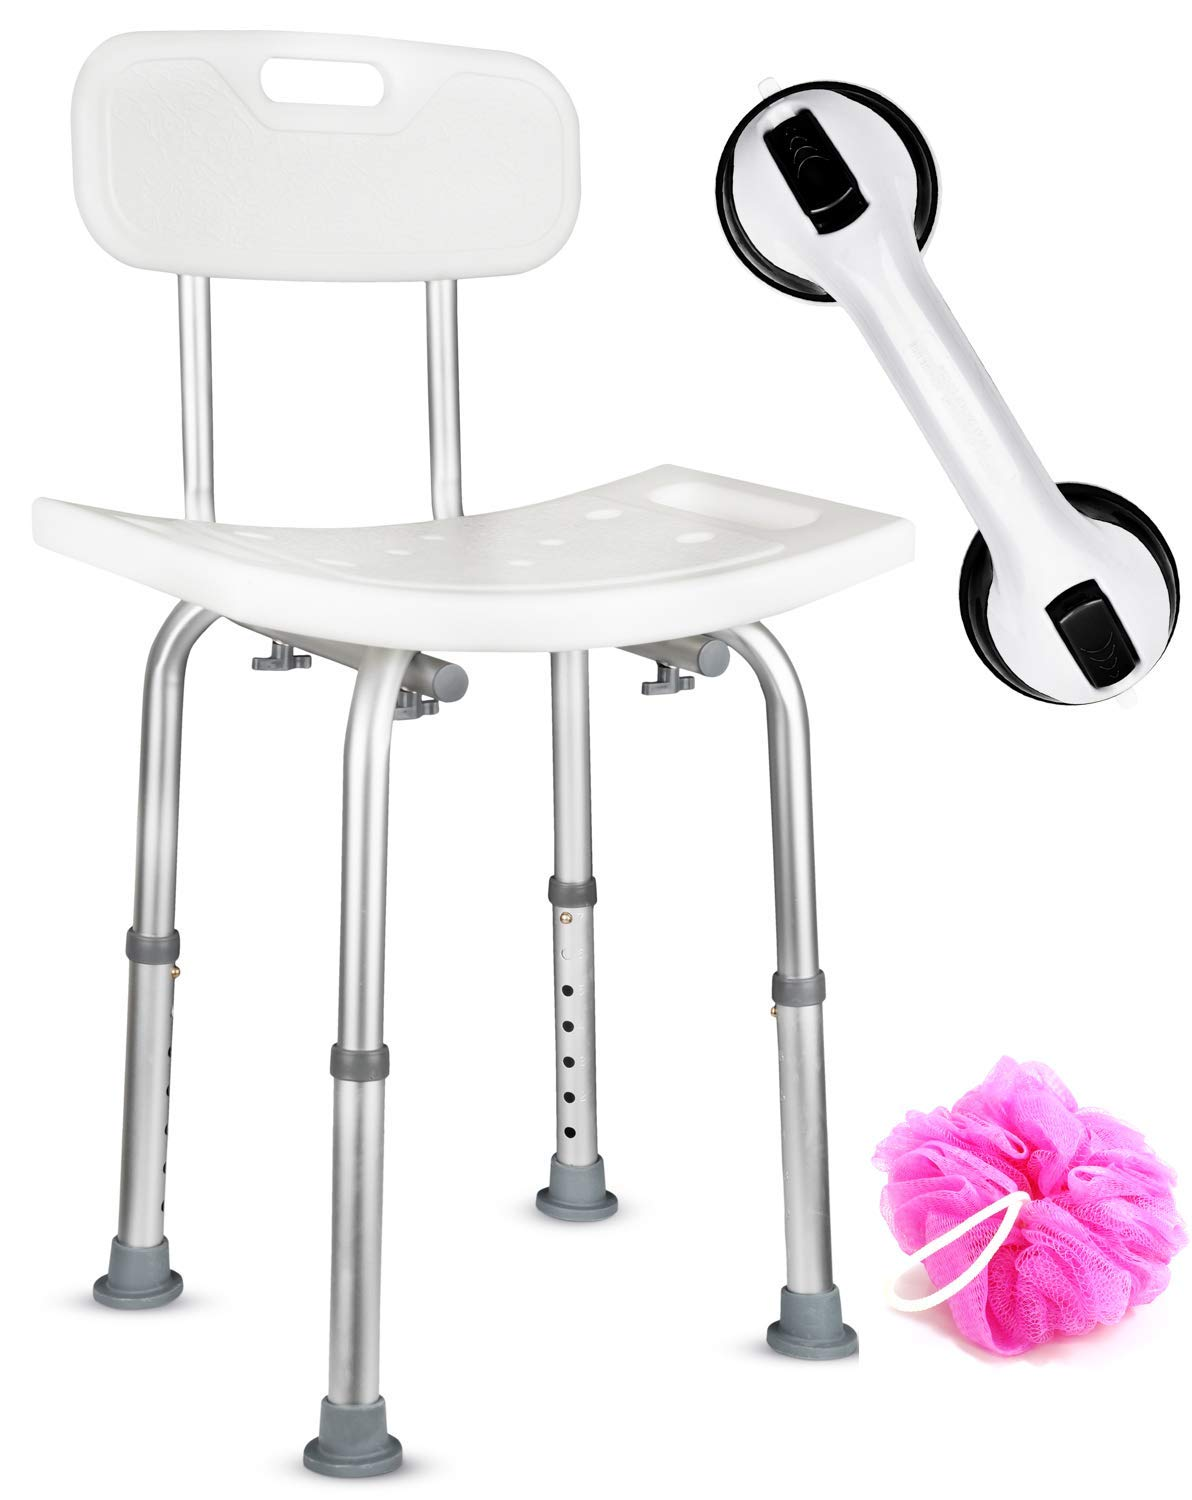 Dr. Maya Adjustable Bath and Shower Chair with Back - Free Suction Assist Grab Bar - Anti-Slip Bench Bathtub Stool Seat for Bathroom Safety